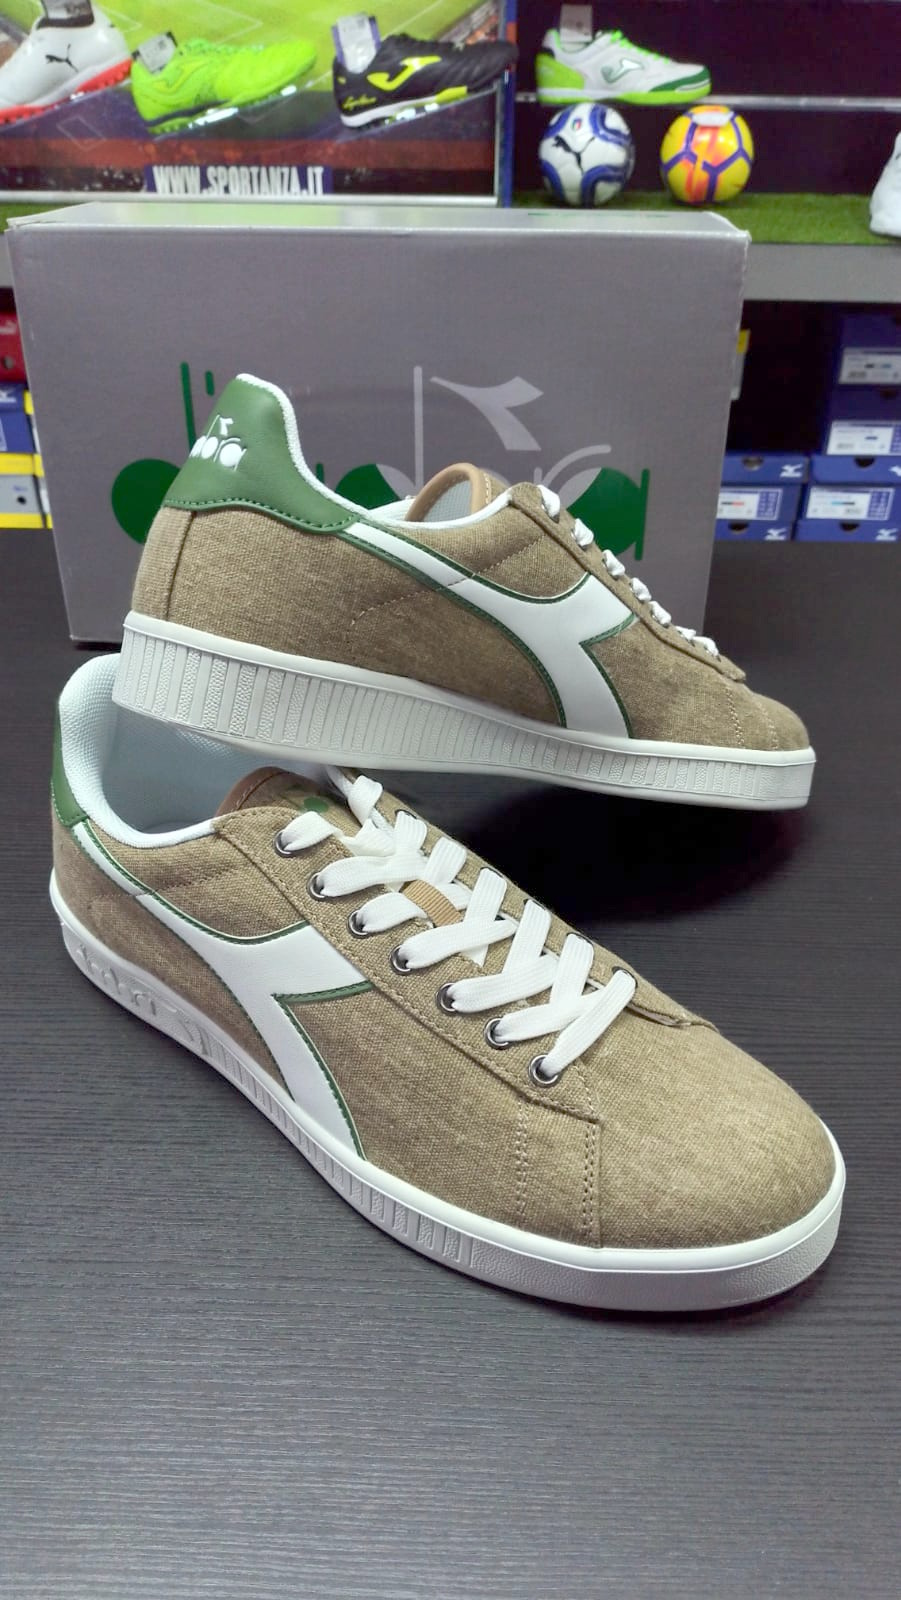 Diadora Scarpe Sneakers Ginnastica Tennis LifeStyle Beige Game Canvas